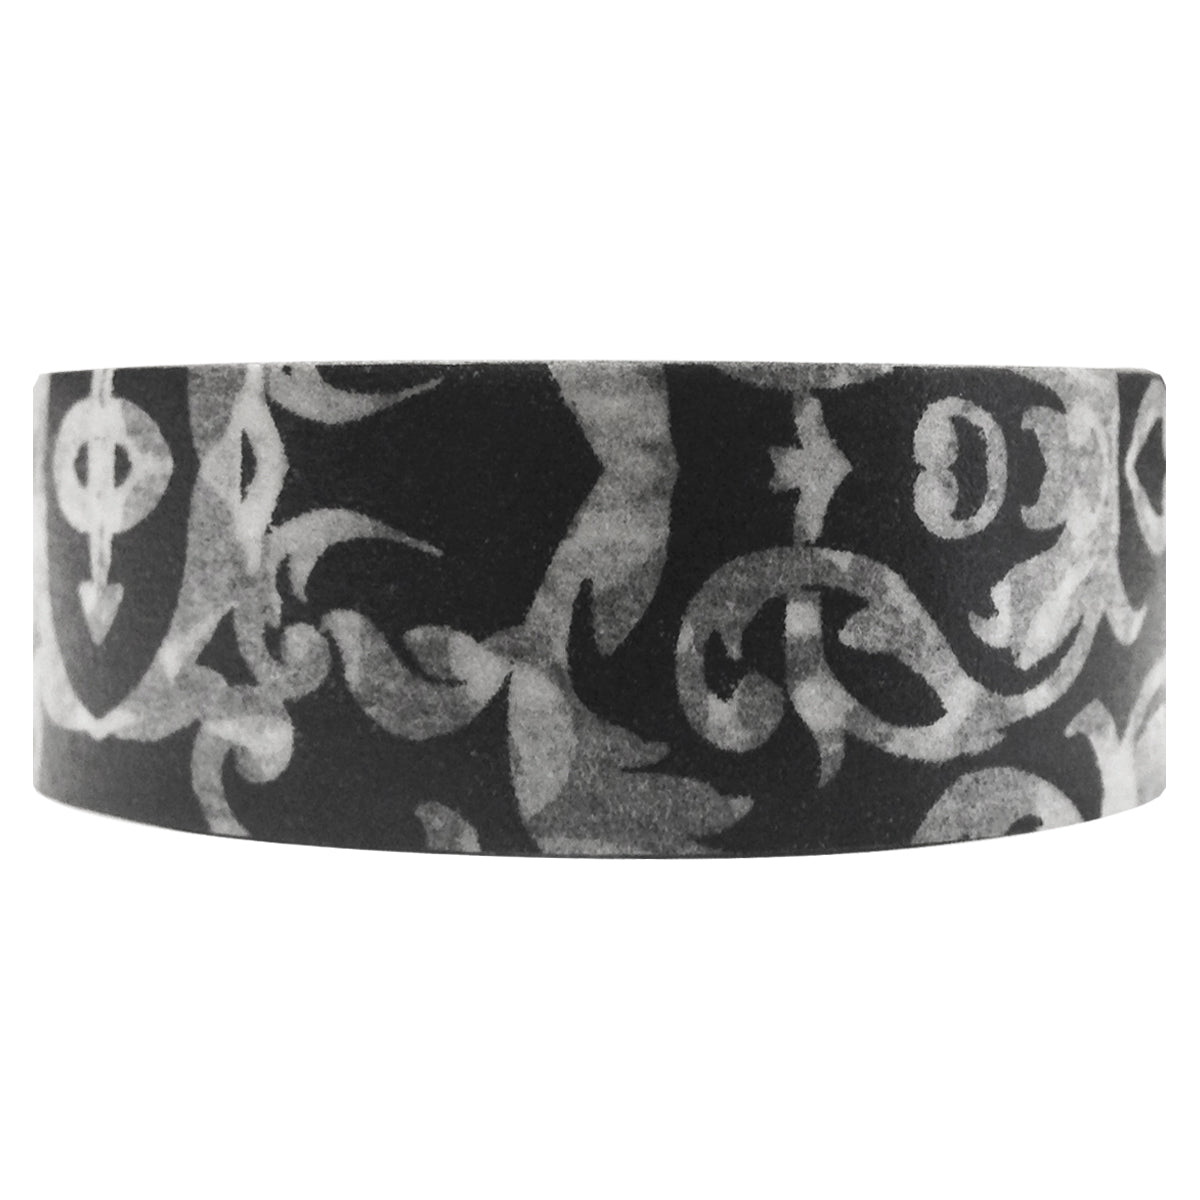 Wrapables Damask Japanese Washi Masking Tape